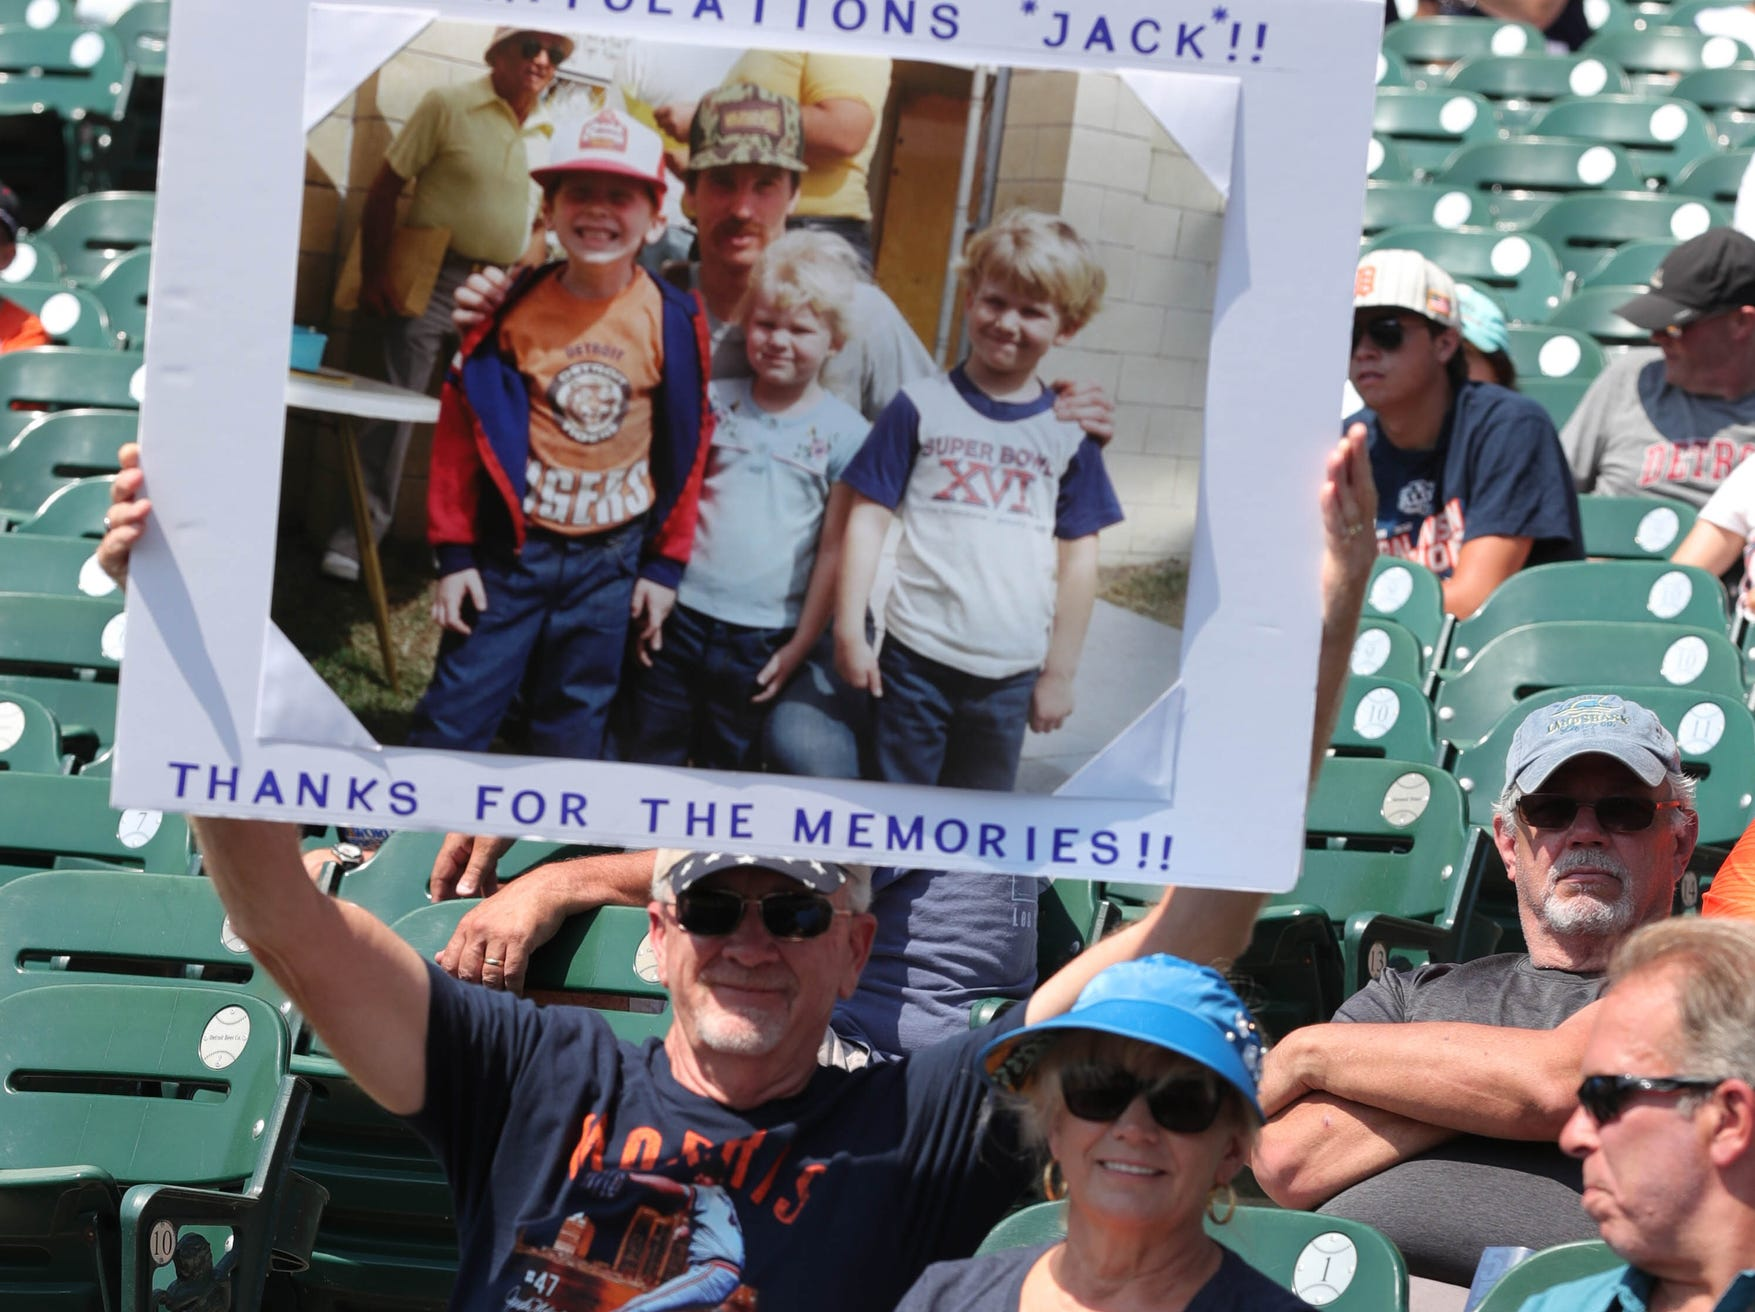 A fan holds a sign for Detroit Tigers Hall of Fame pitcher Jack Morris before the start of the Tigers game against Minnesota on Sunday, August 12, 2018, at Comerica Park in Detroit.